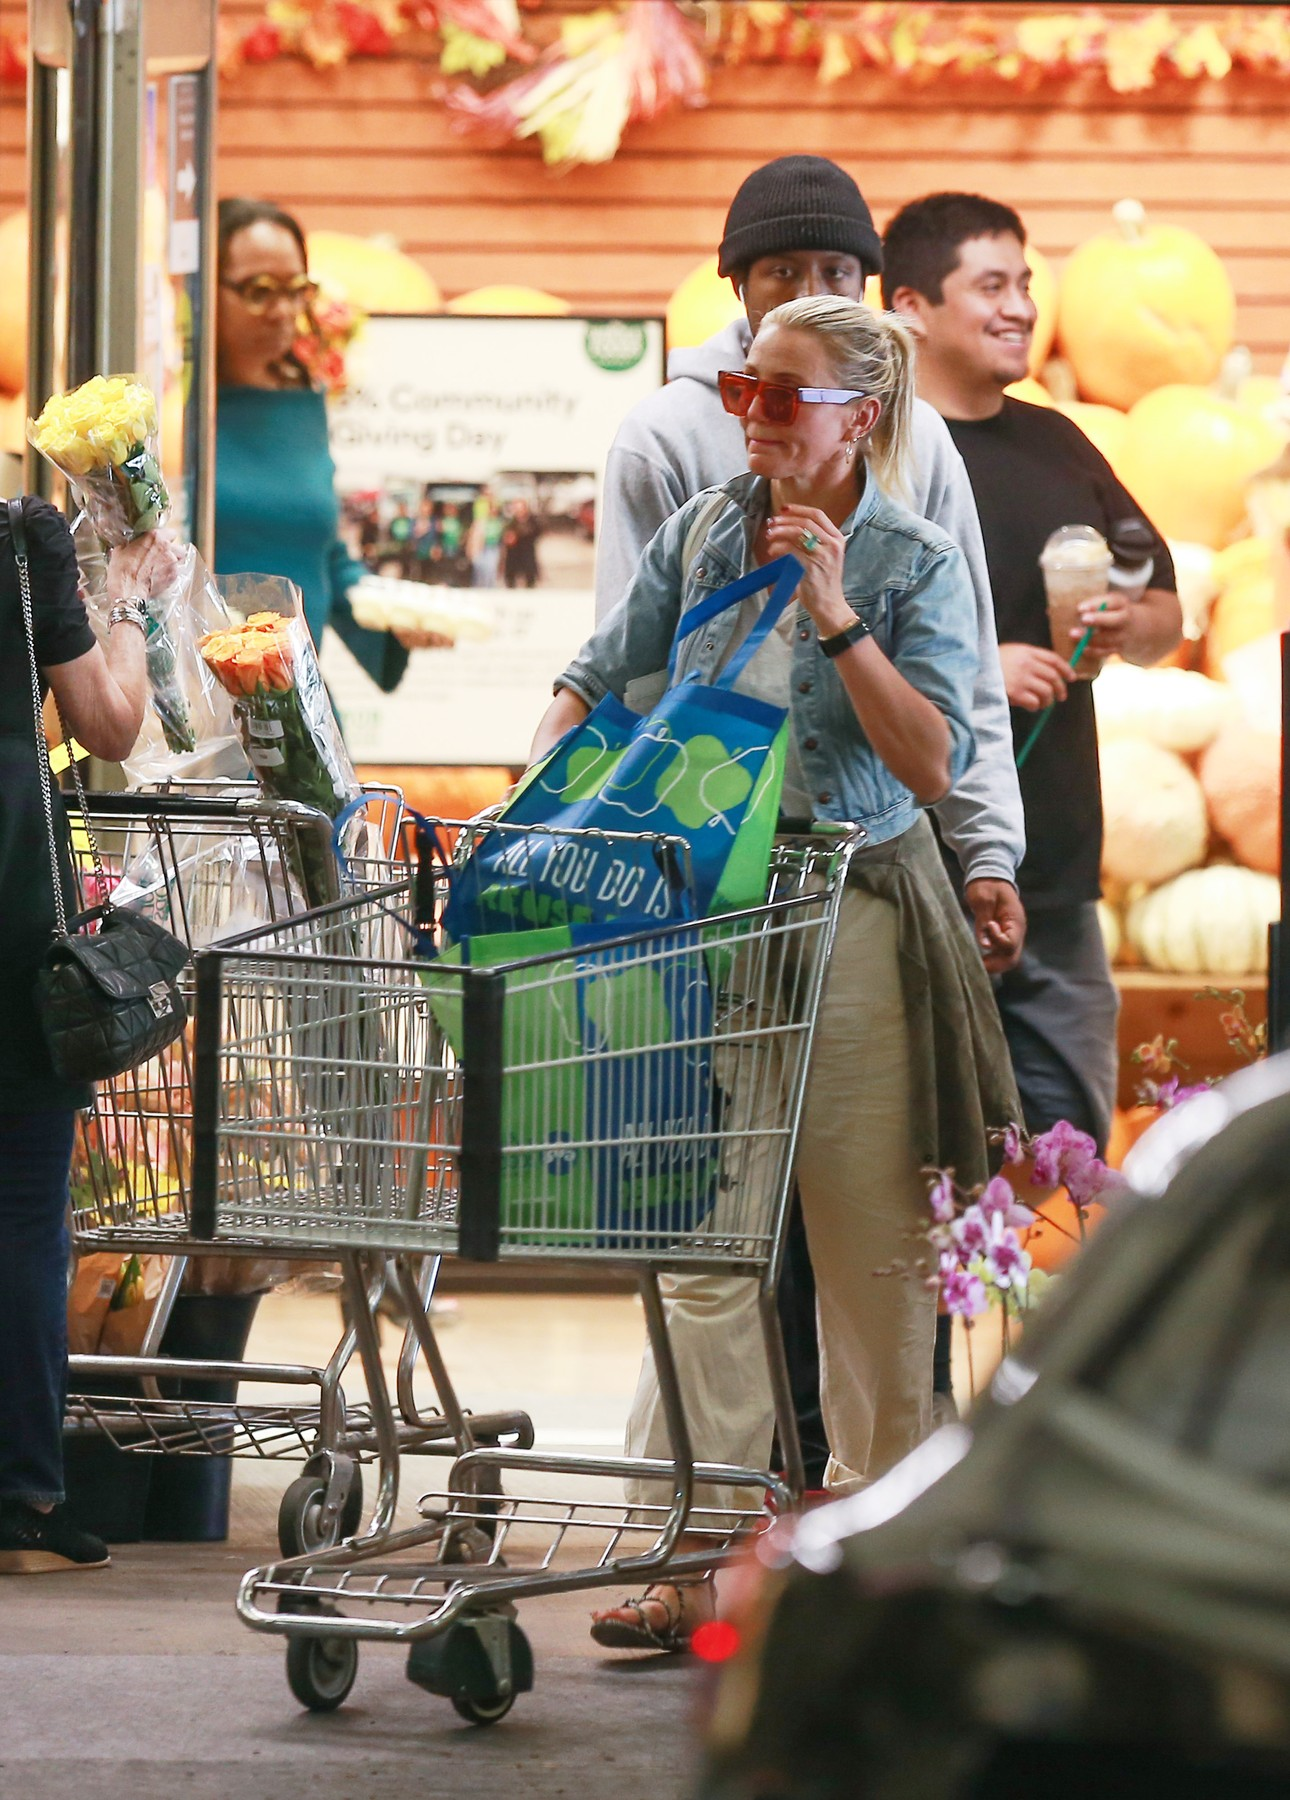 10/11/2019 EXCLUSIVE: Cameron Diaz is Spotted Shopping at Whole Foods in Beverly Hills, California. The 47 year old actress wore a white t-shirt, denim jacket, baggy pants, sandals, and carried a white Goyard tote bag.     **VIDEO AVAILABLE**, Image: 476266578, License: Rights-managed, Restrictions: Exclusive NO usage without agreed price and terms. Please contact sales@theimagedirect.com, Model Release: no, Credit line: TheImageDirect.com / The Image Direct / Profimedia